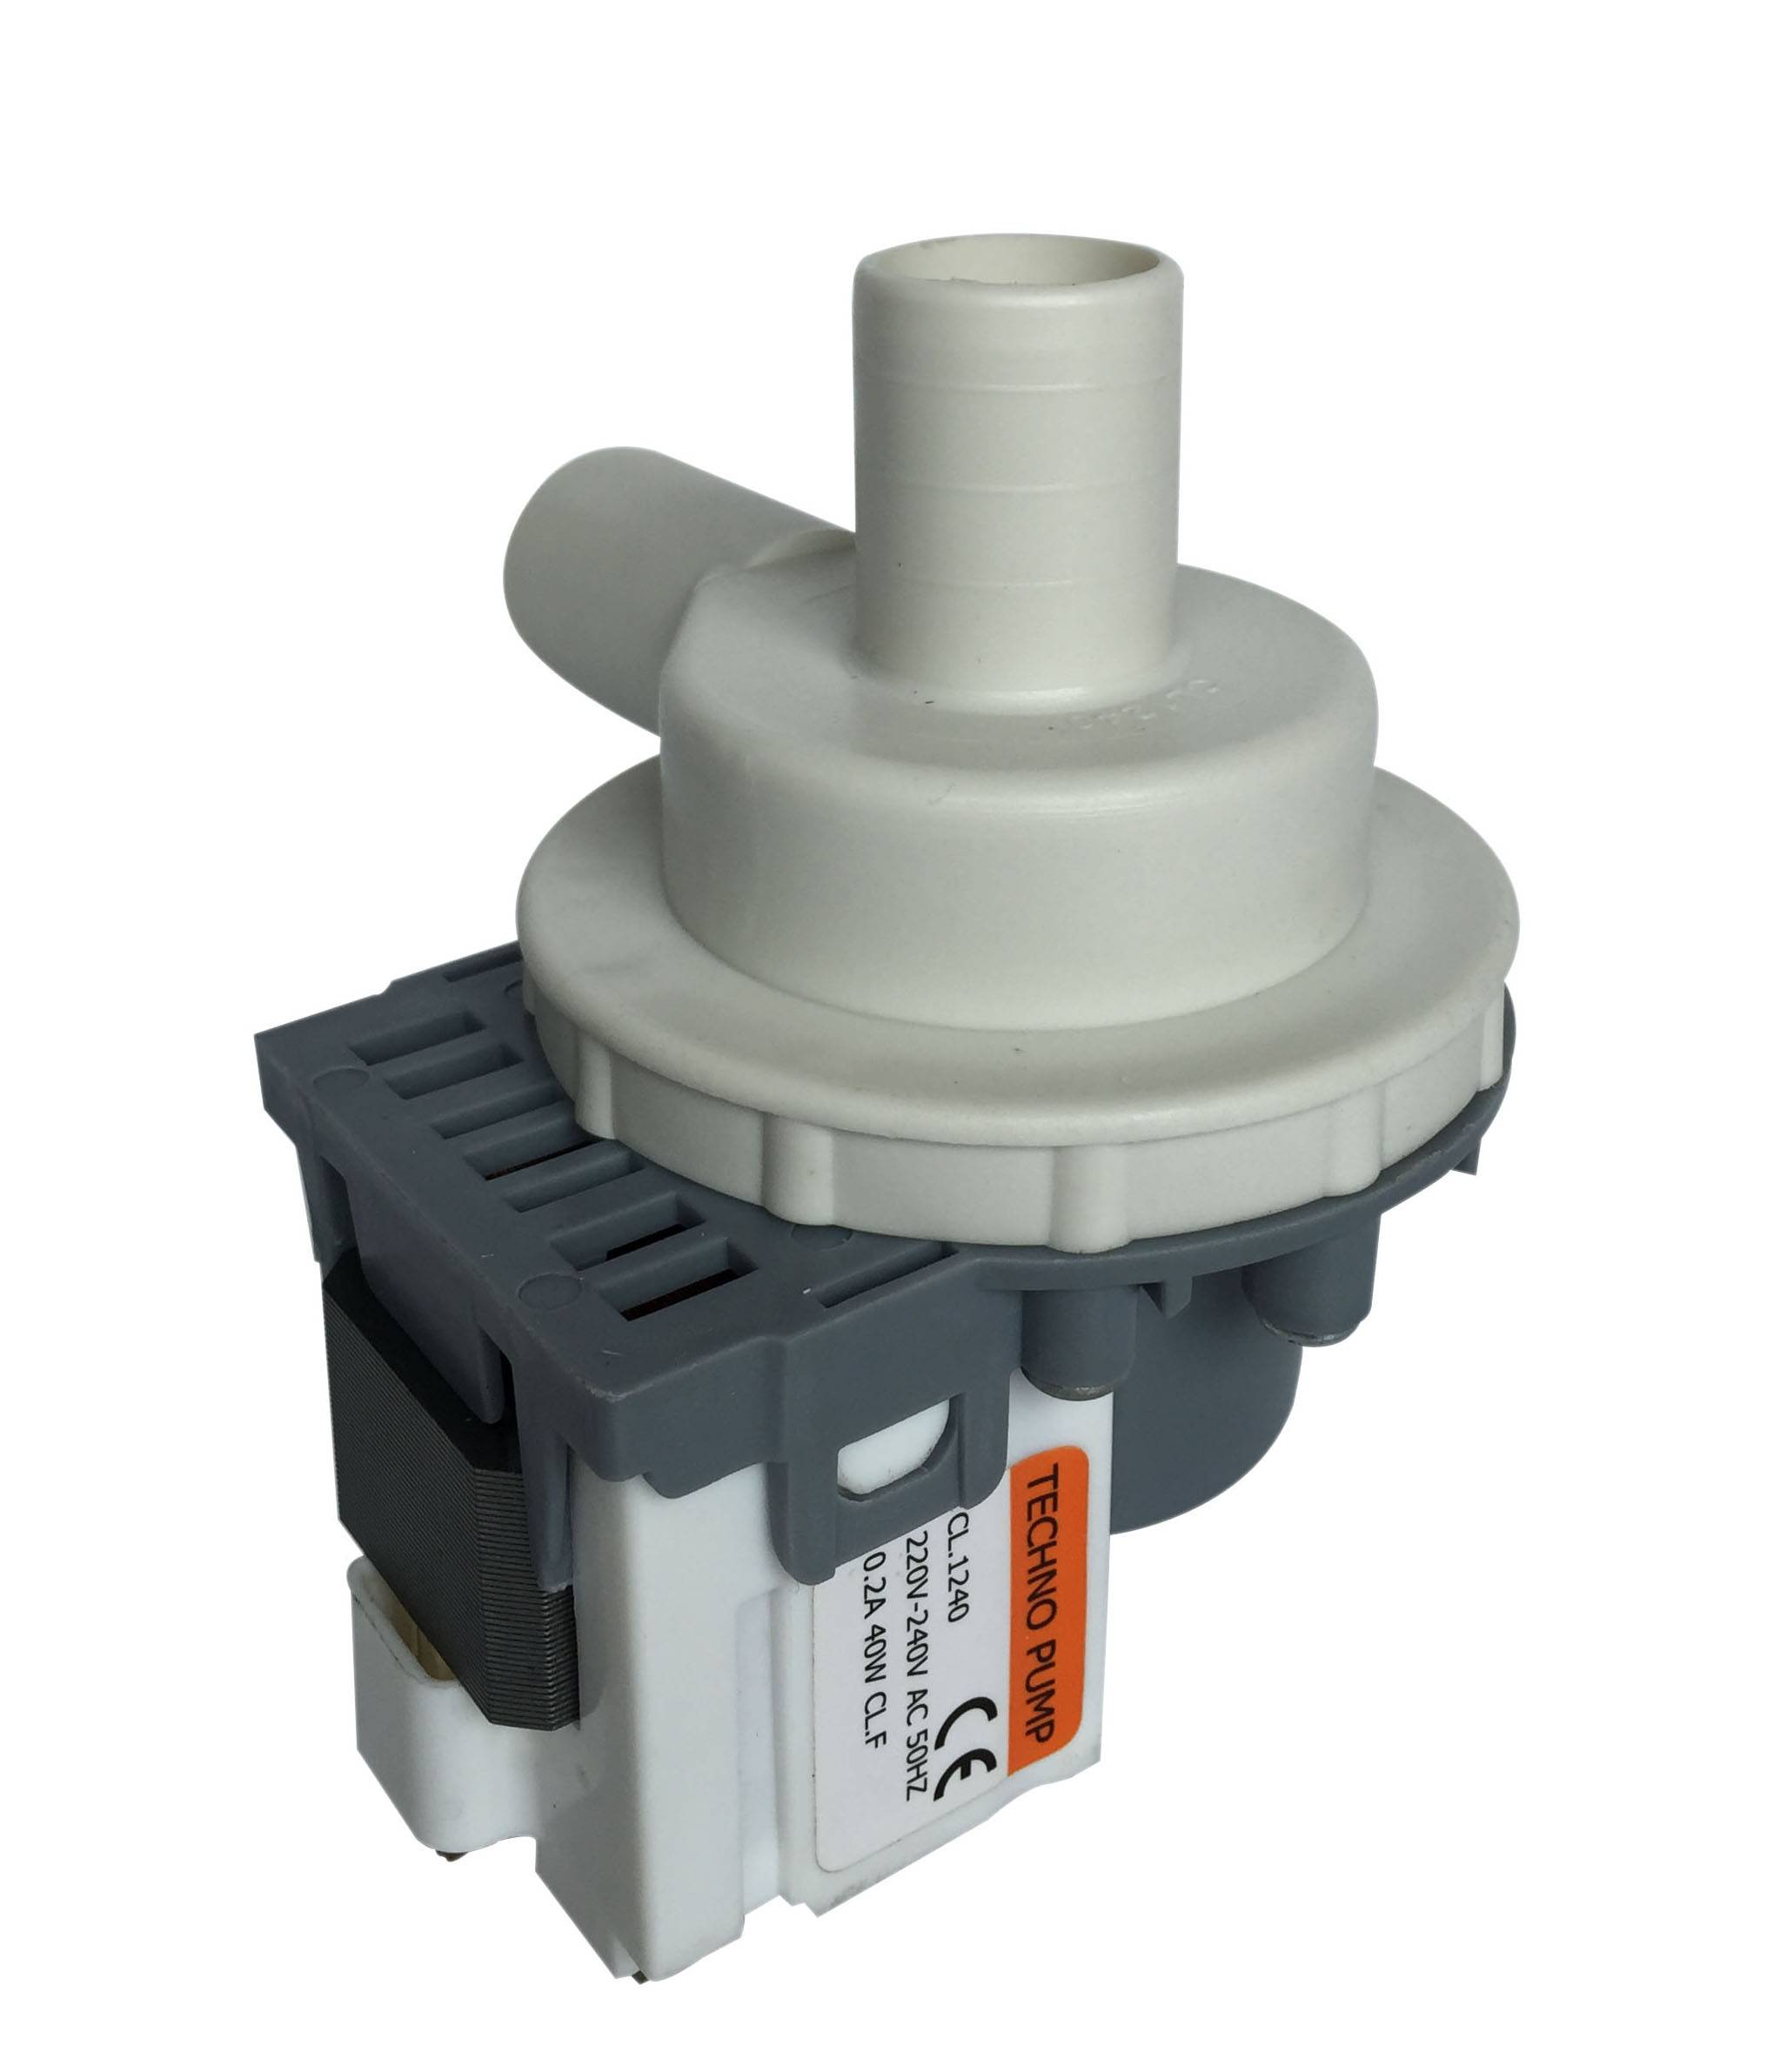 DRAIN PUMP FOR SIMTEL WASHING MACHINE